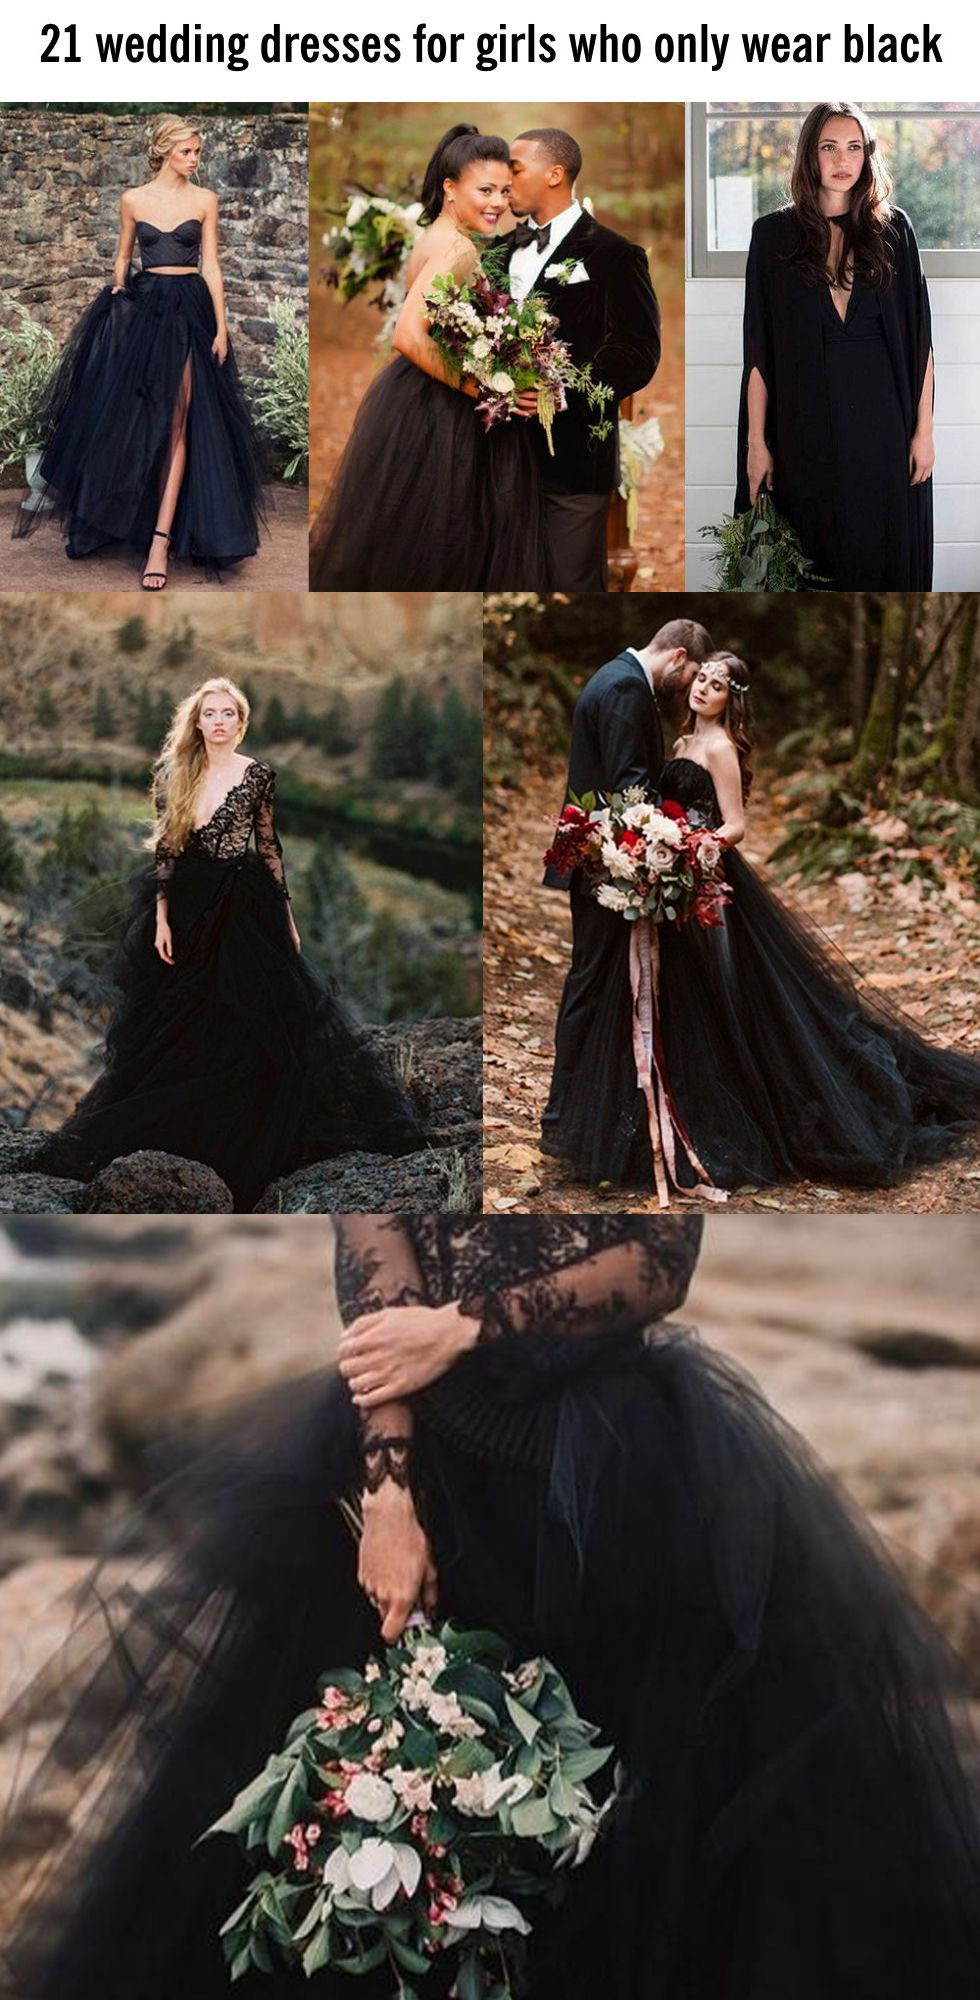 wedding dresses for girls who only wear black prom wedding